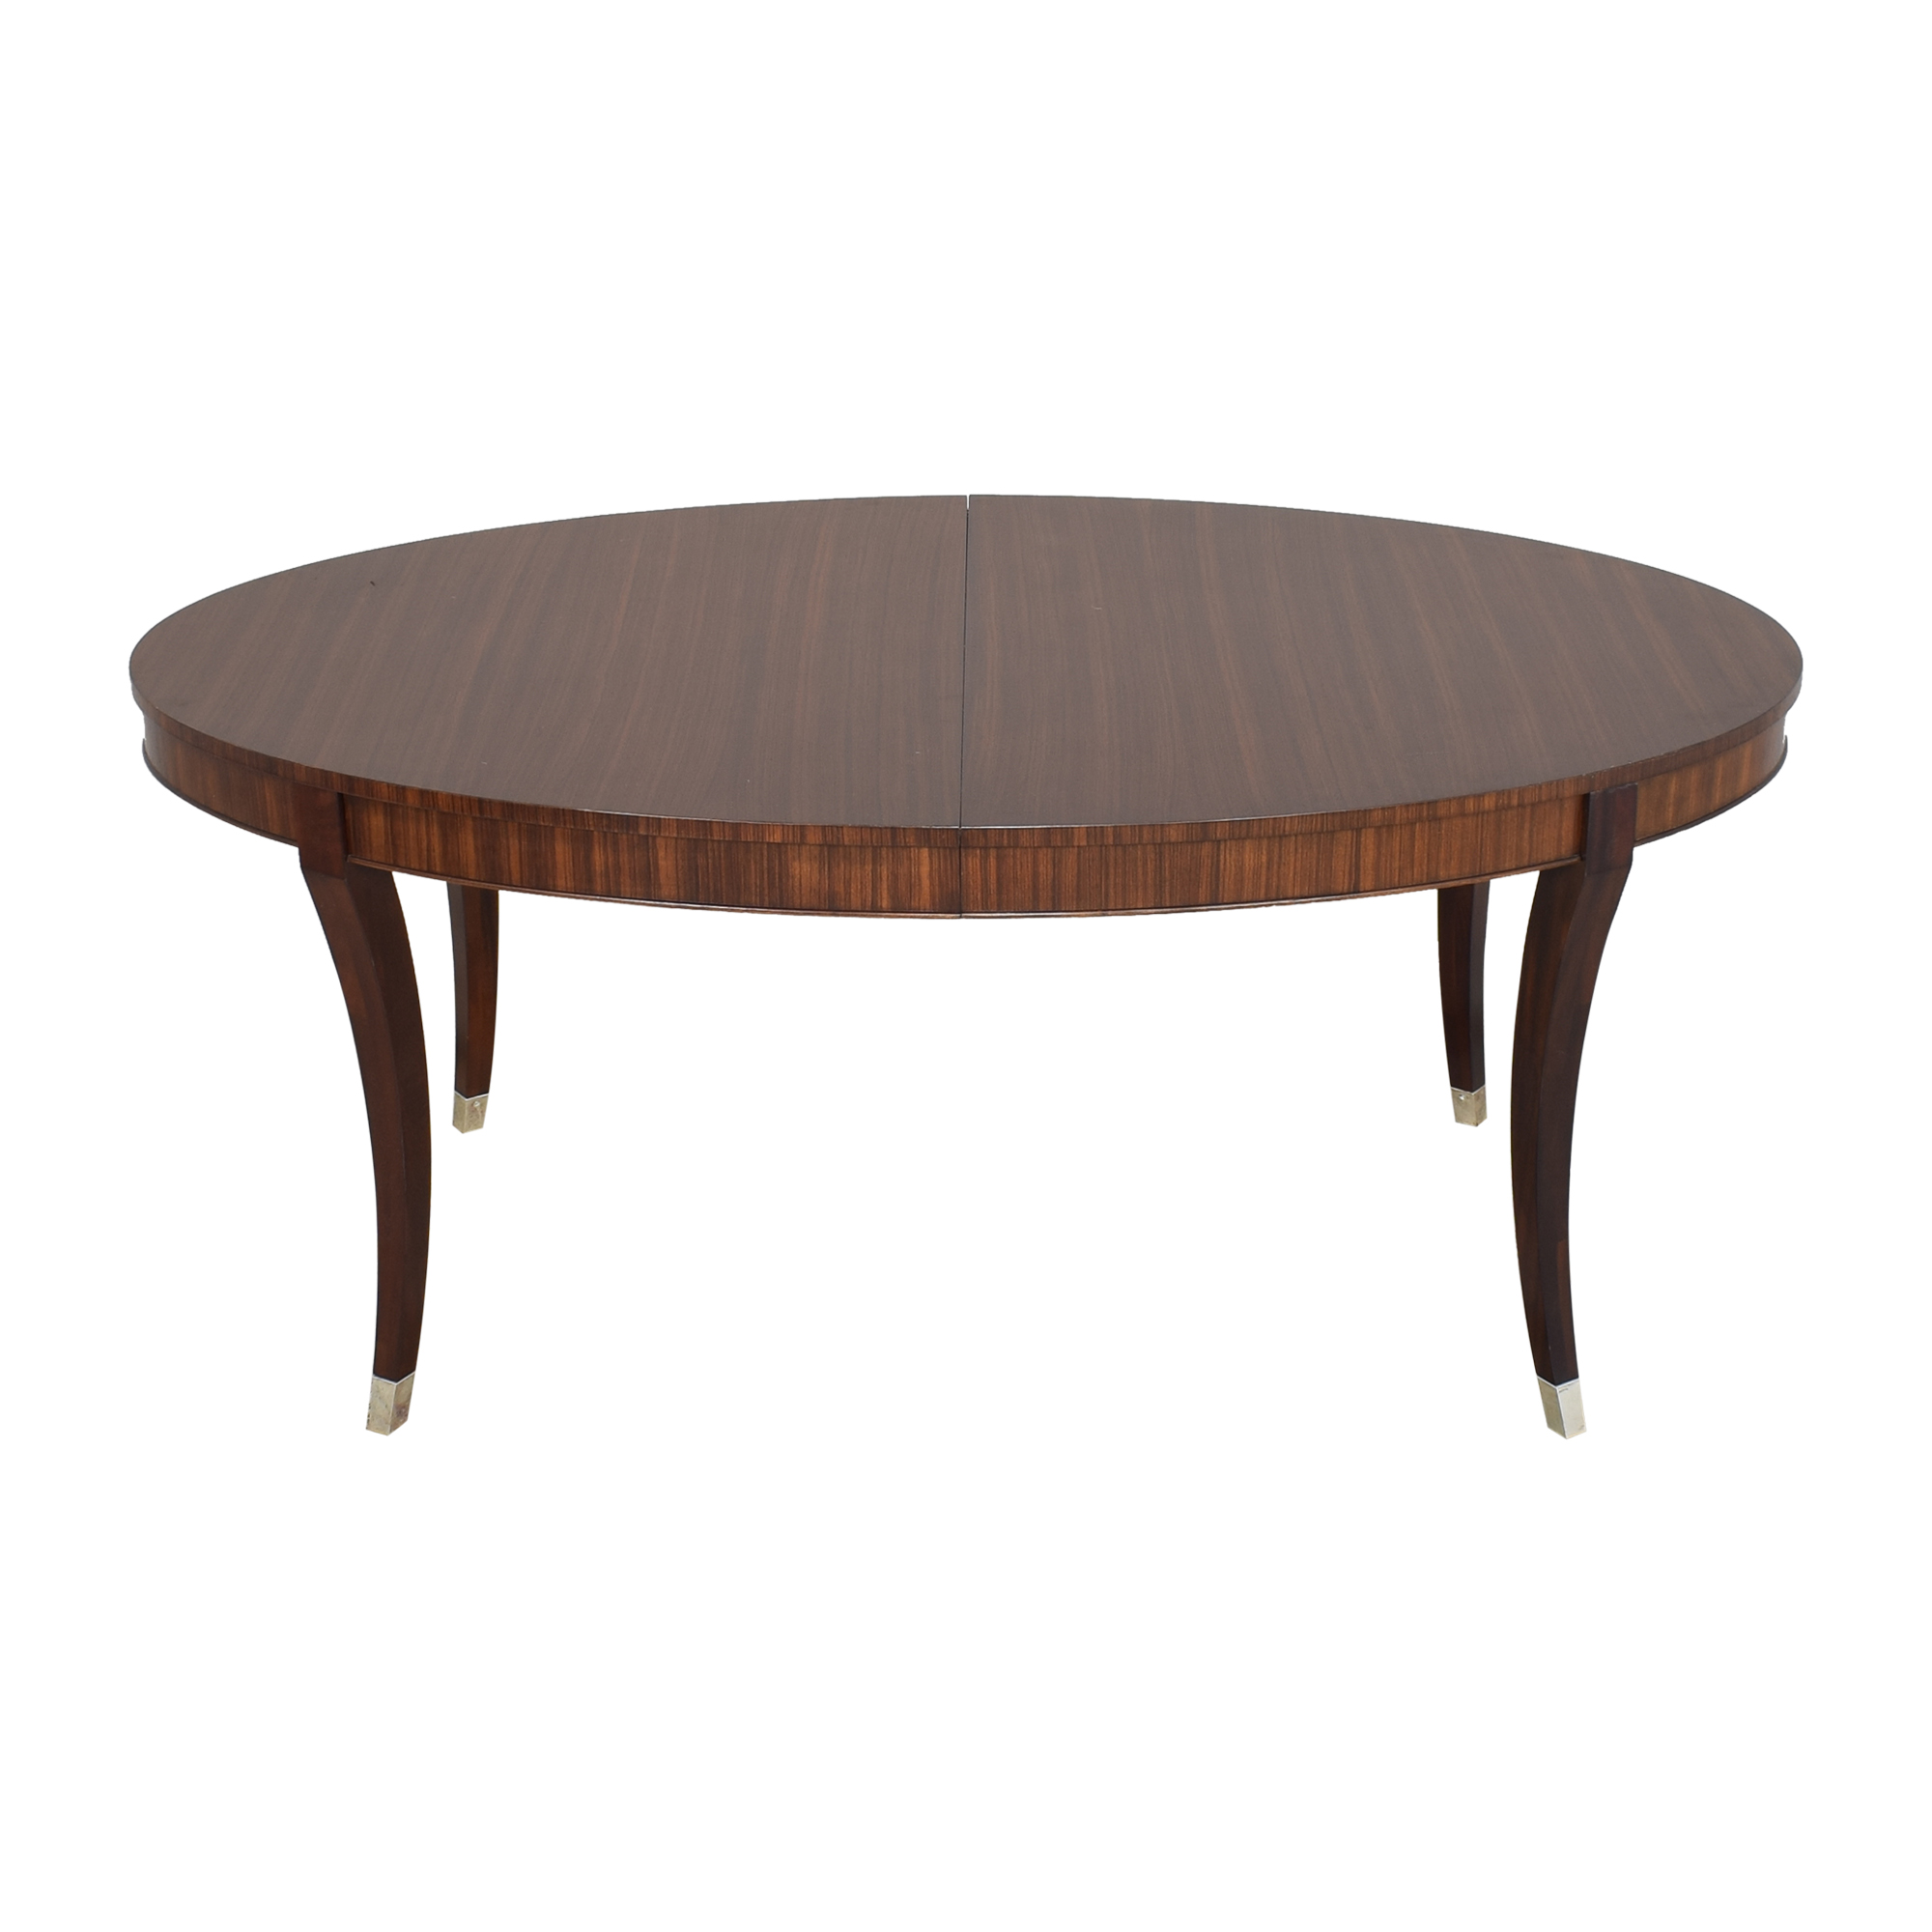 buy Ethan Allen Hathaway Extension Dining Table Ethan Allen Dinner Tables